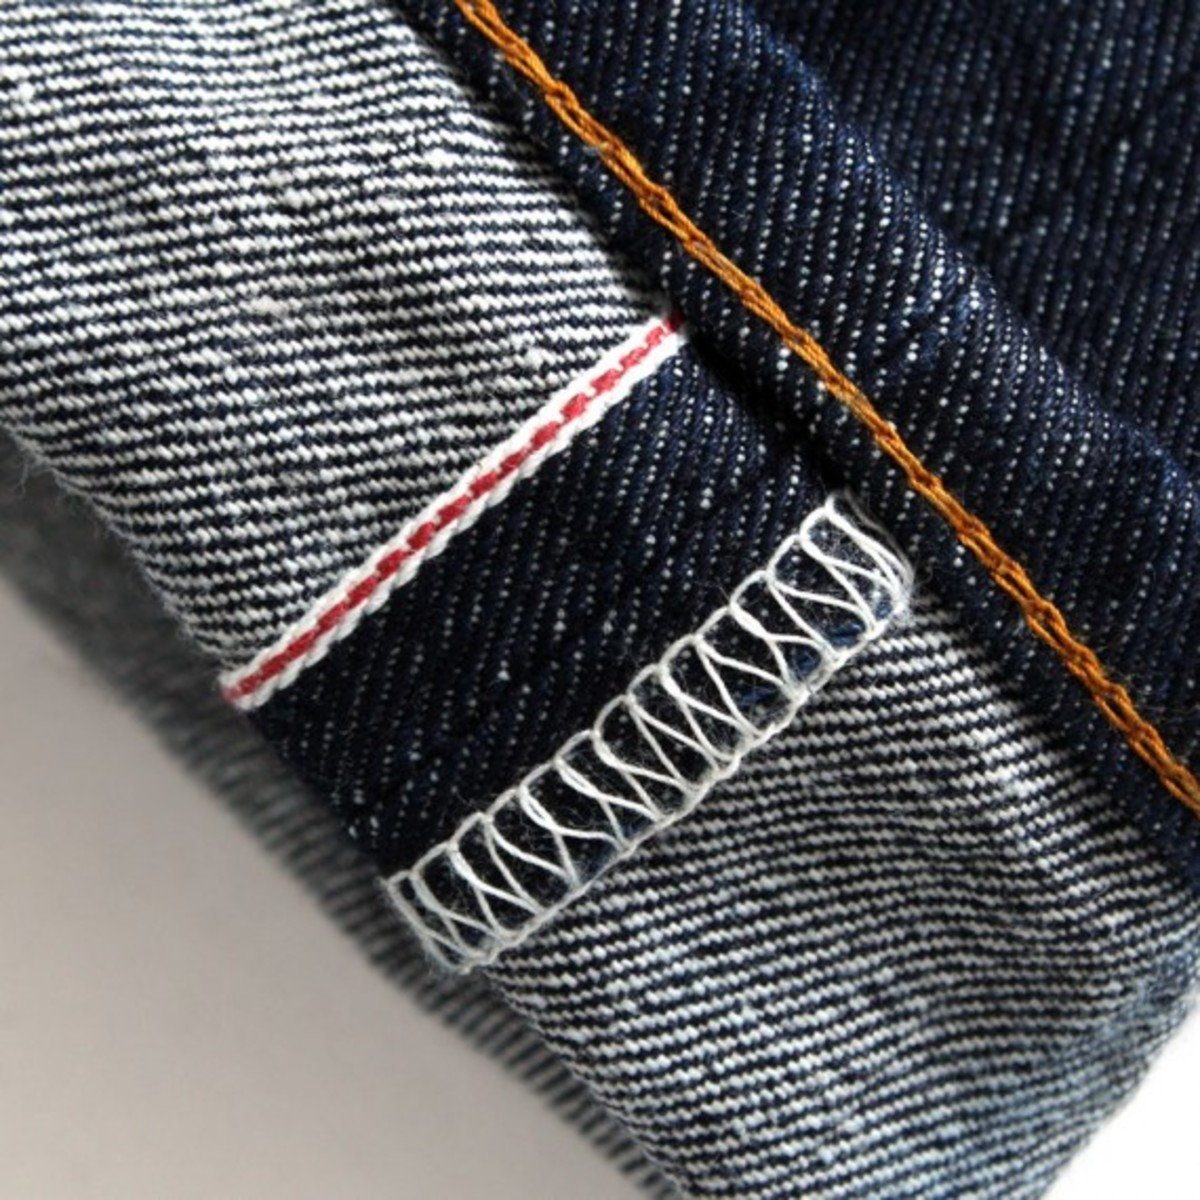 505-jeans-03